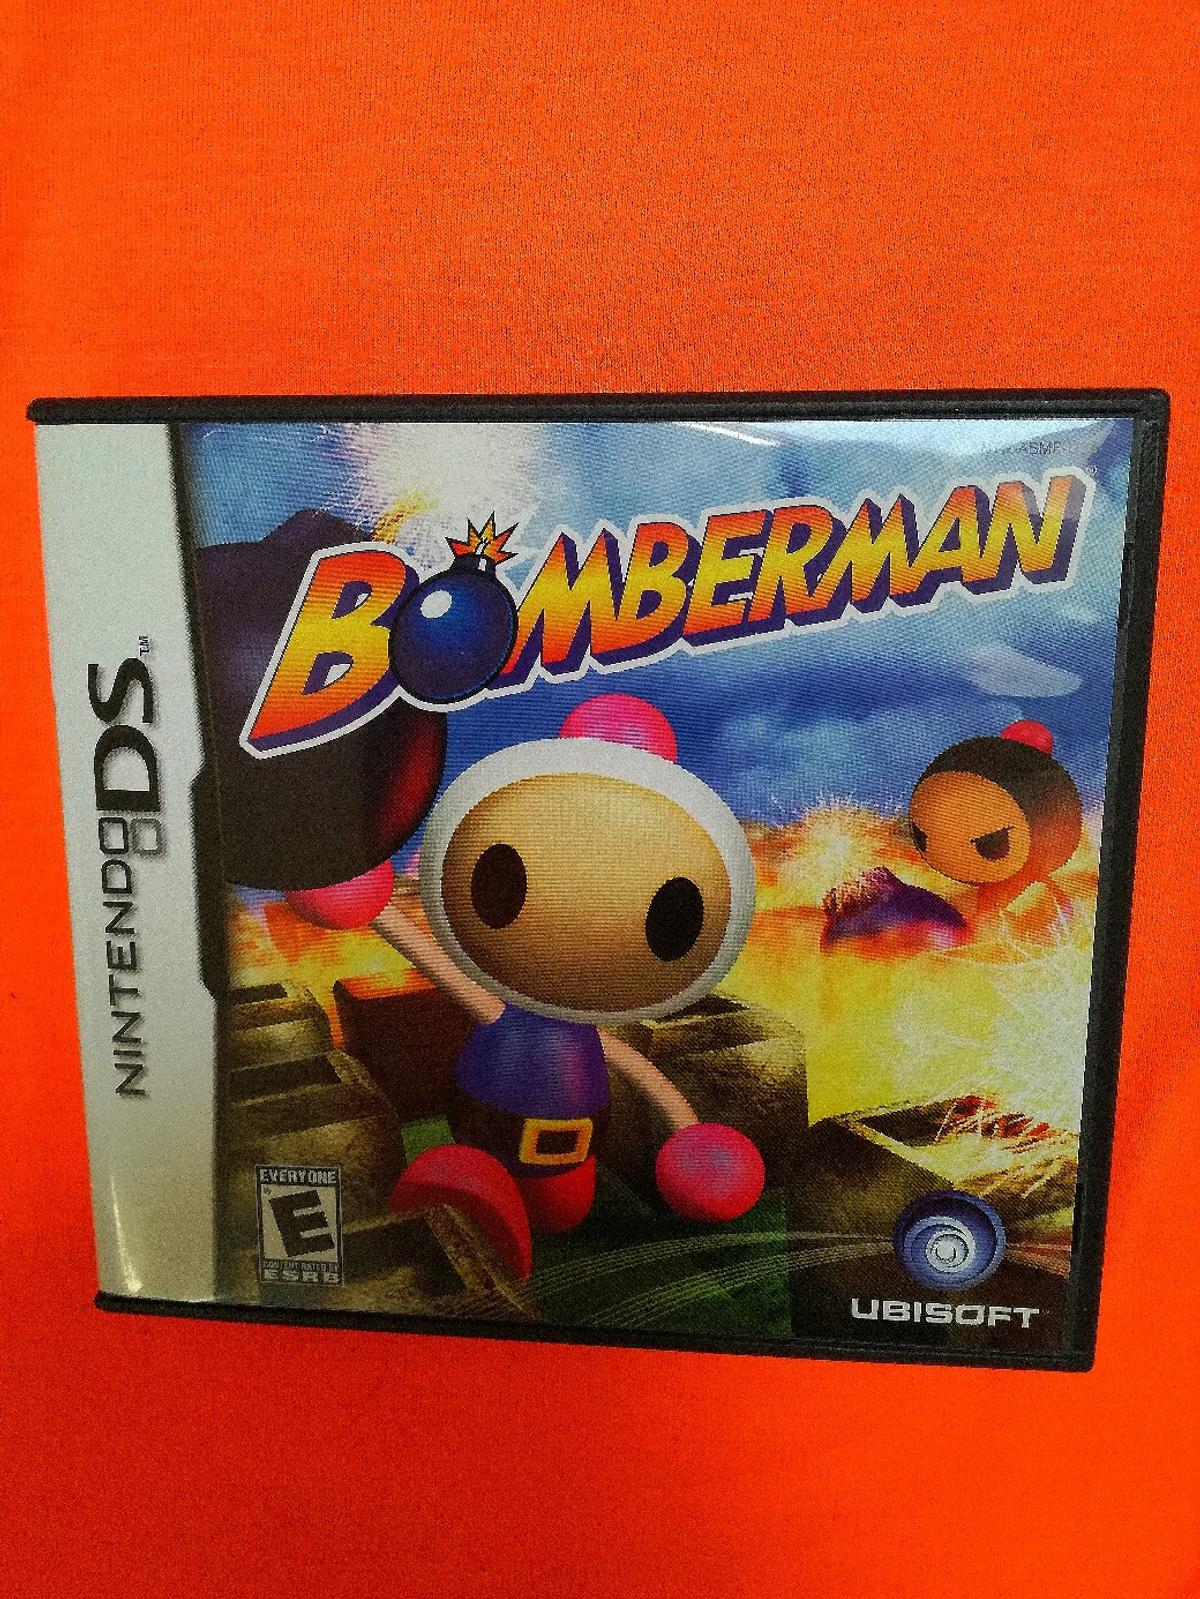 NINTENDO DS GAME BOMBERMAN AS NEW CONDITION BUYER TO COLLECT ONLY THANKS FROM REDDITCH B96